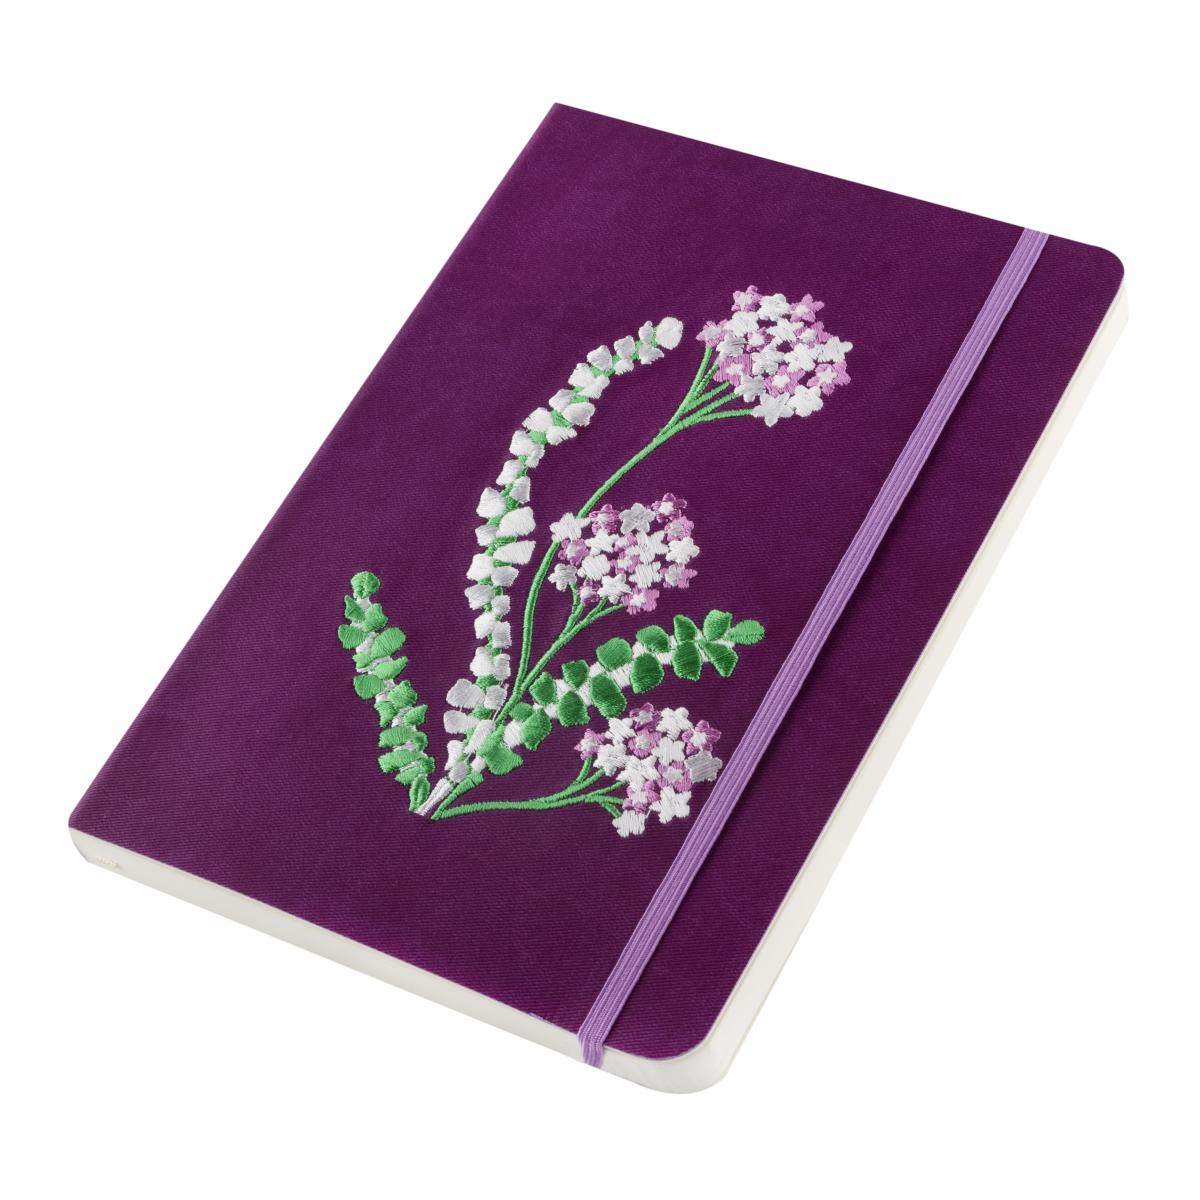 Violet notebook with embroidered flowers. Photo №2. | Narodnyi dim Ukraine